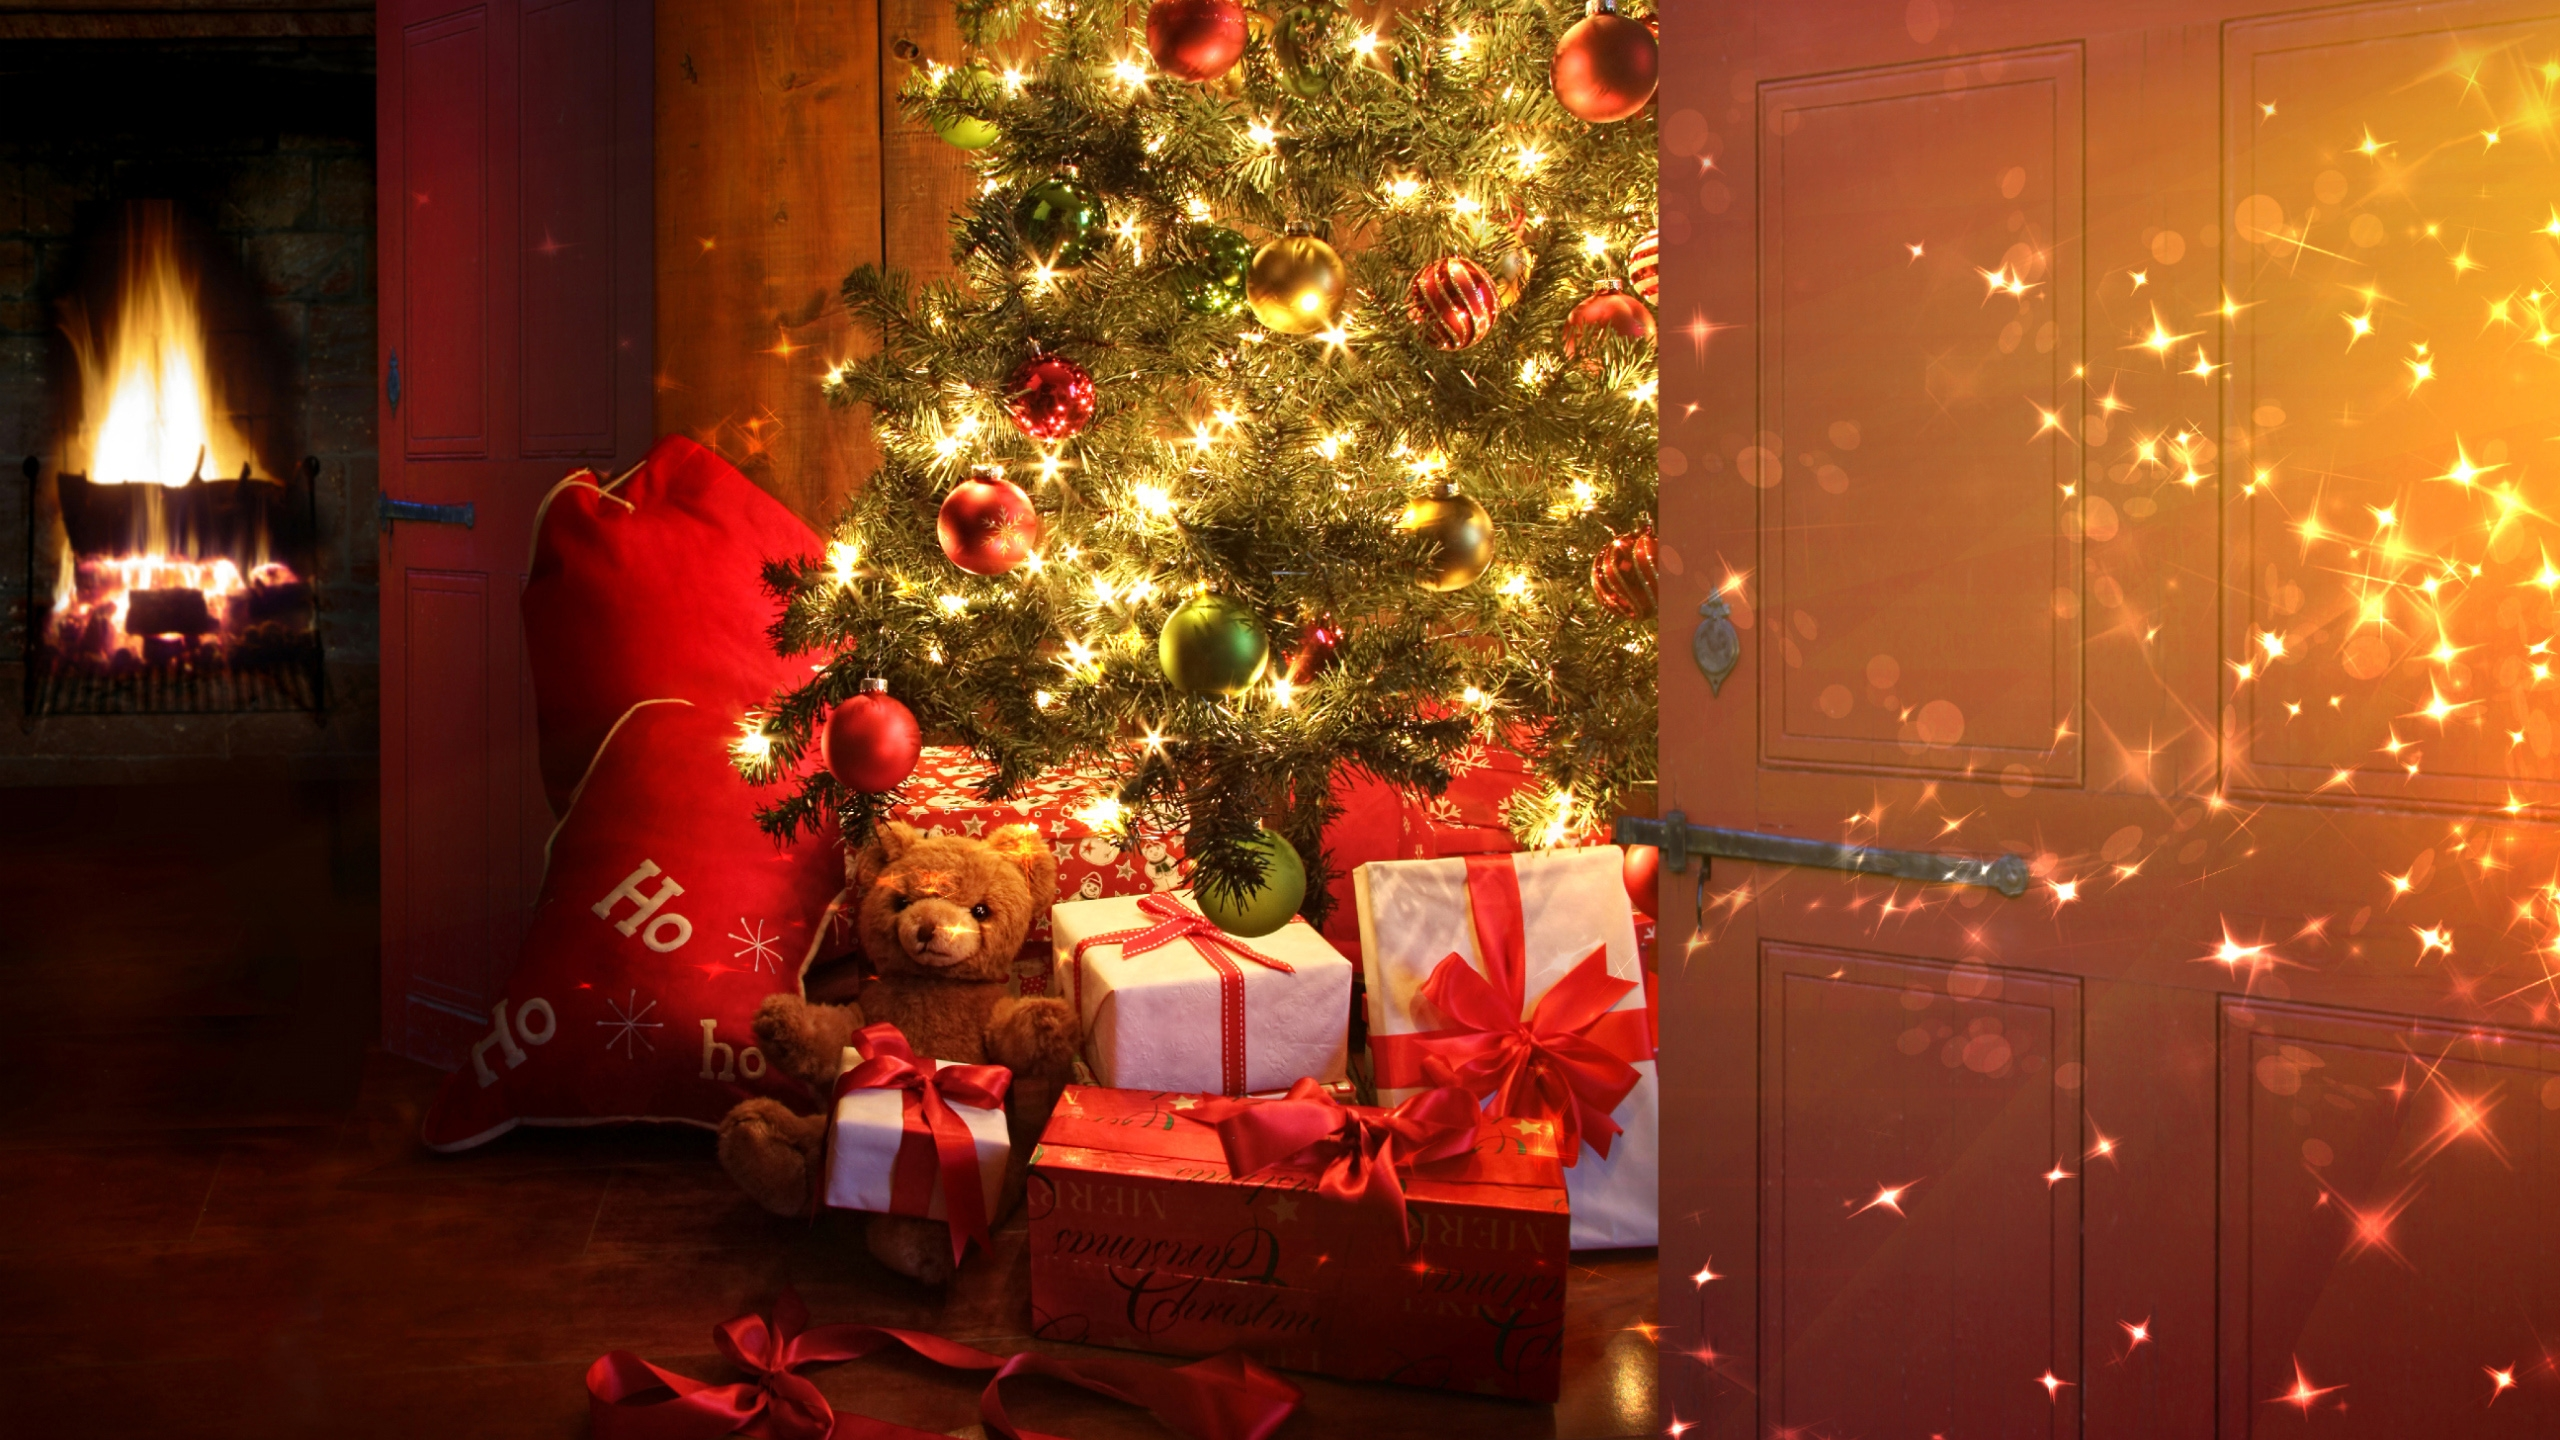 2560x1440 christmas tree and presents desktop pc and mac wallpaper voltagebd Gallery